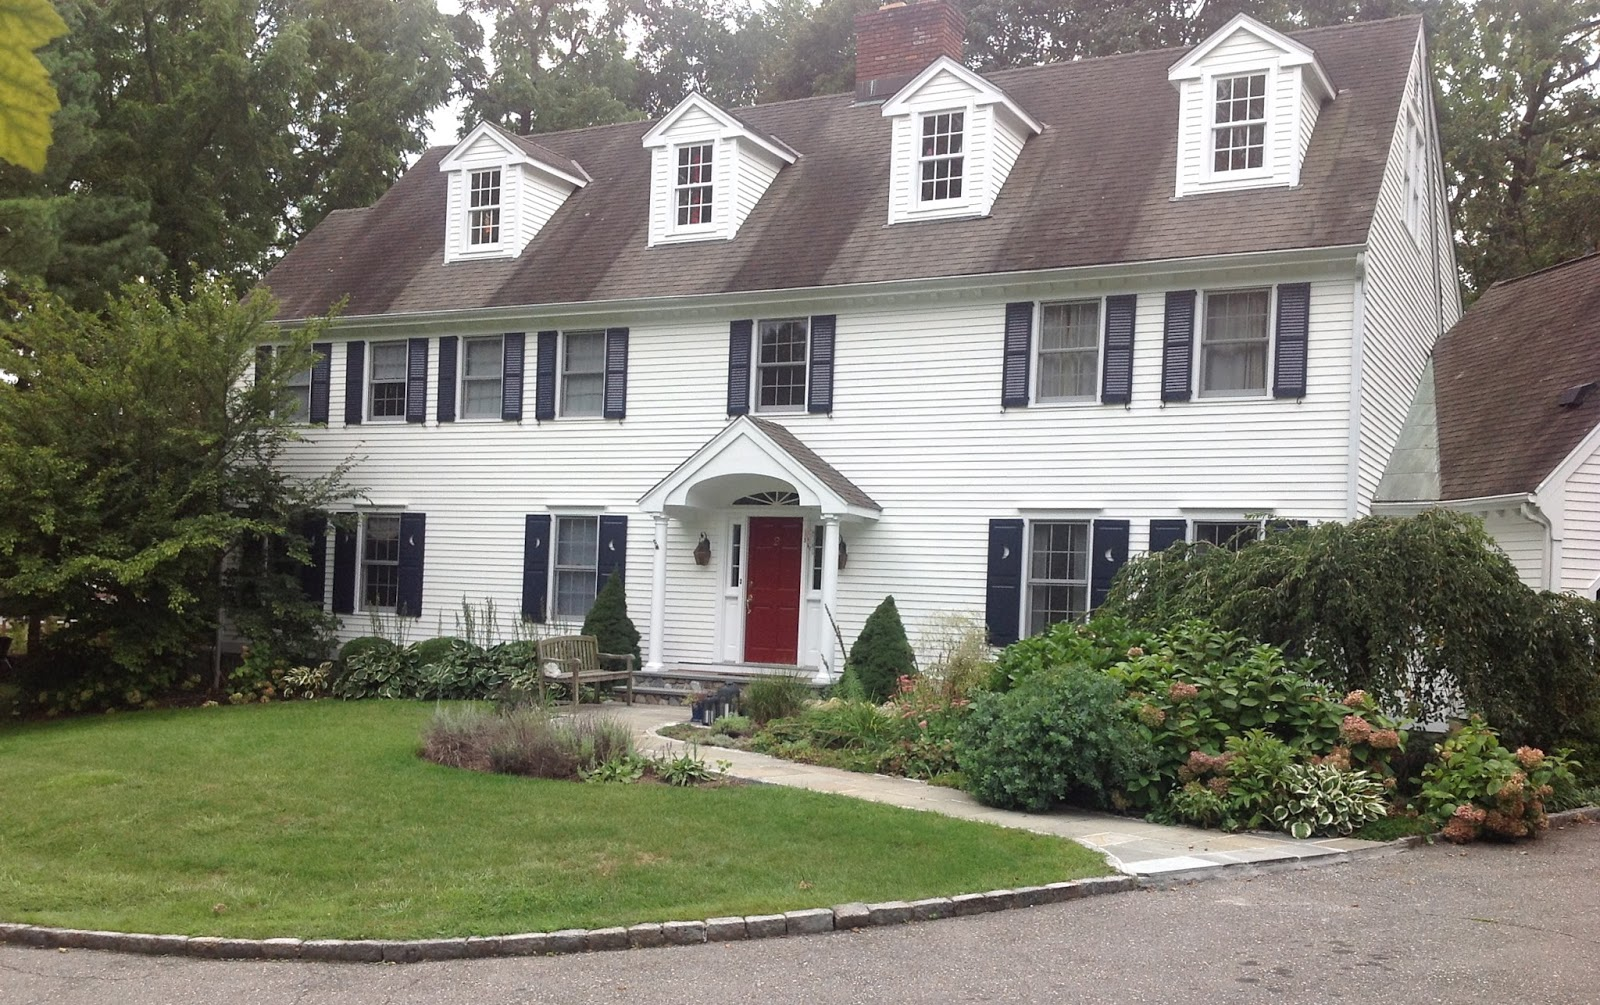 Color Forte Exterior Paint Color Consultation In Riverside Ct With Simply White Hale Navy